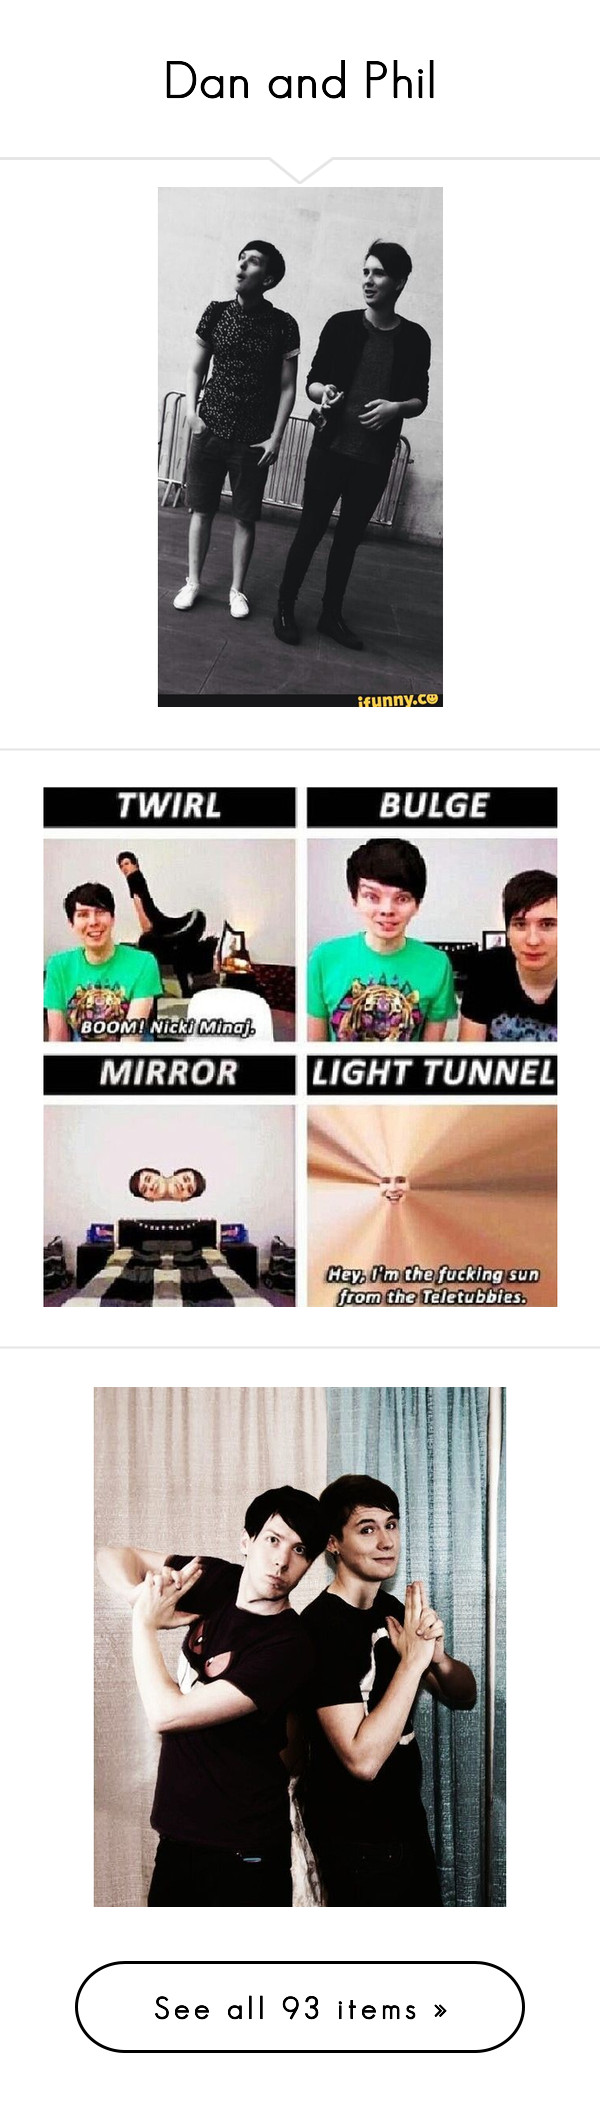 """""""Dan and Phil"""" by pierce-the-muflafla ❤ liked on Polyvore featuring youtubers, dan and phil, backgrounds, dan howell, people, text, phrase, quotes, saying and tops"""